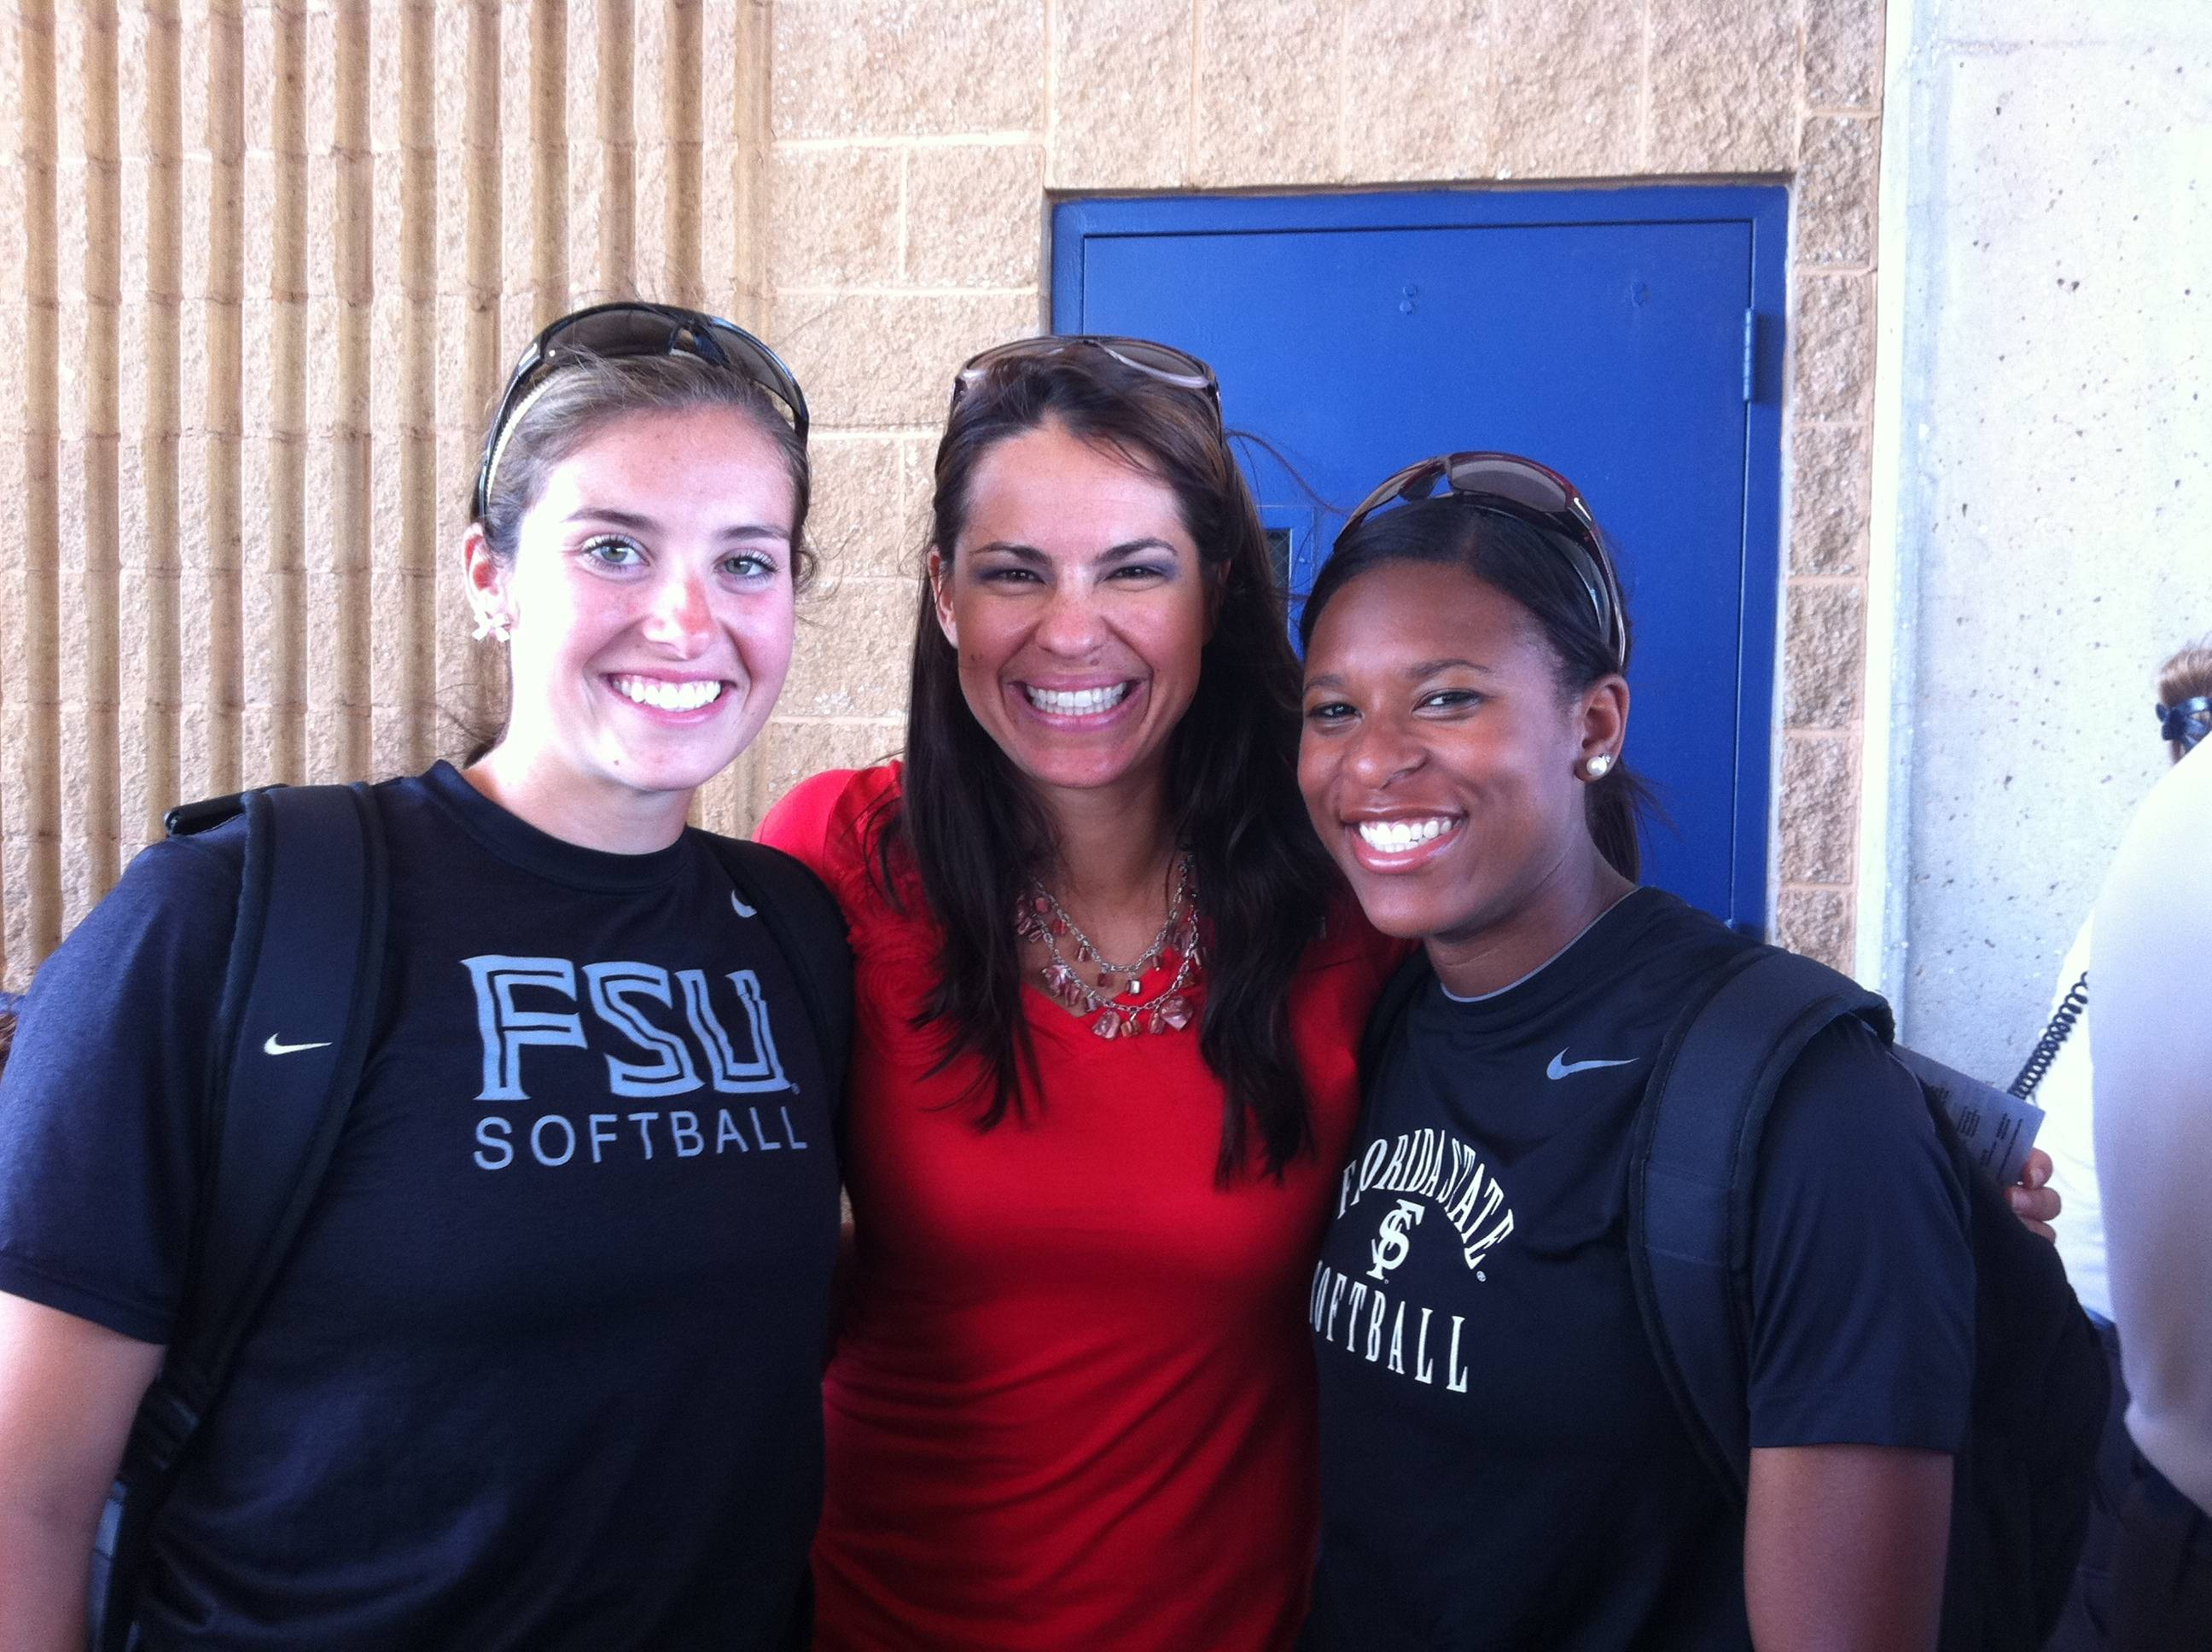 The girls meet Jessica Mendoza, an ESPN analyst and softball great